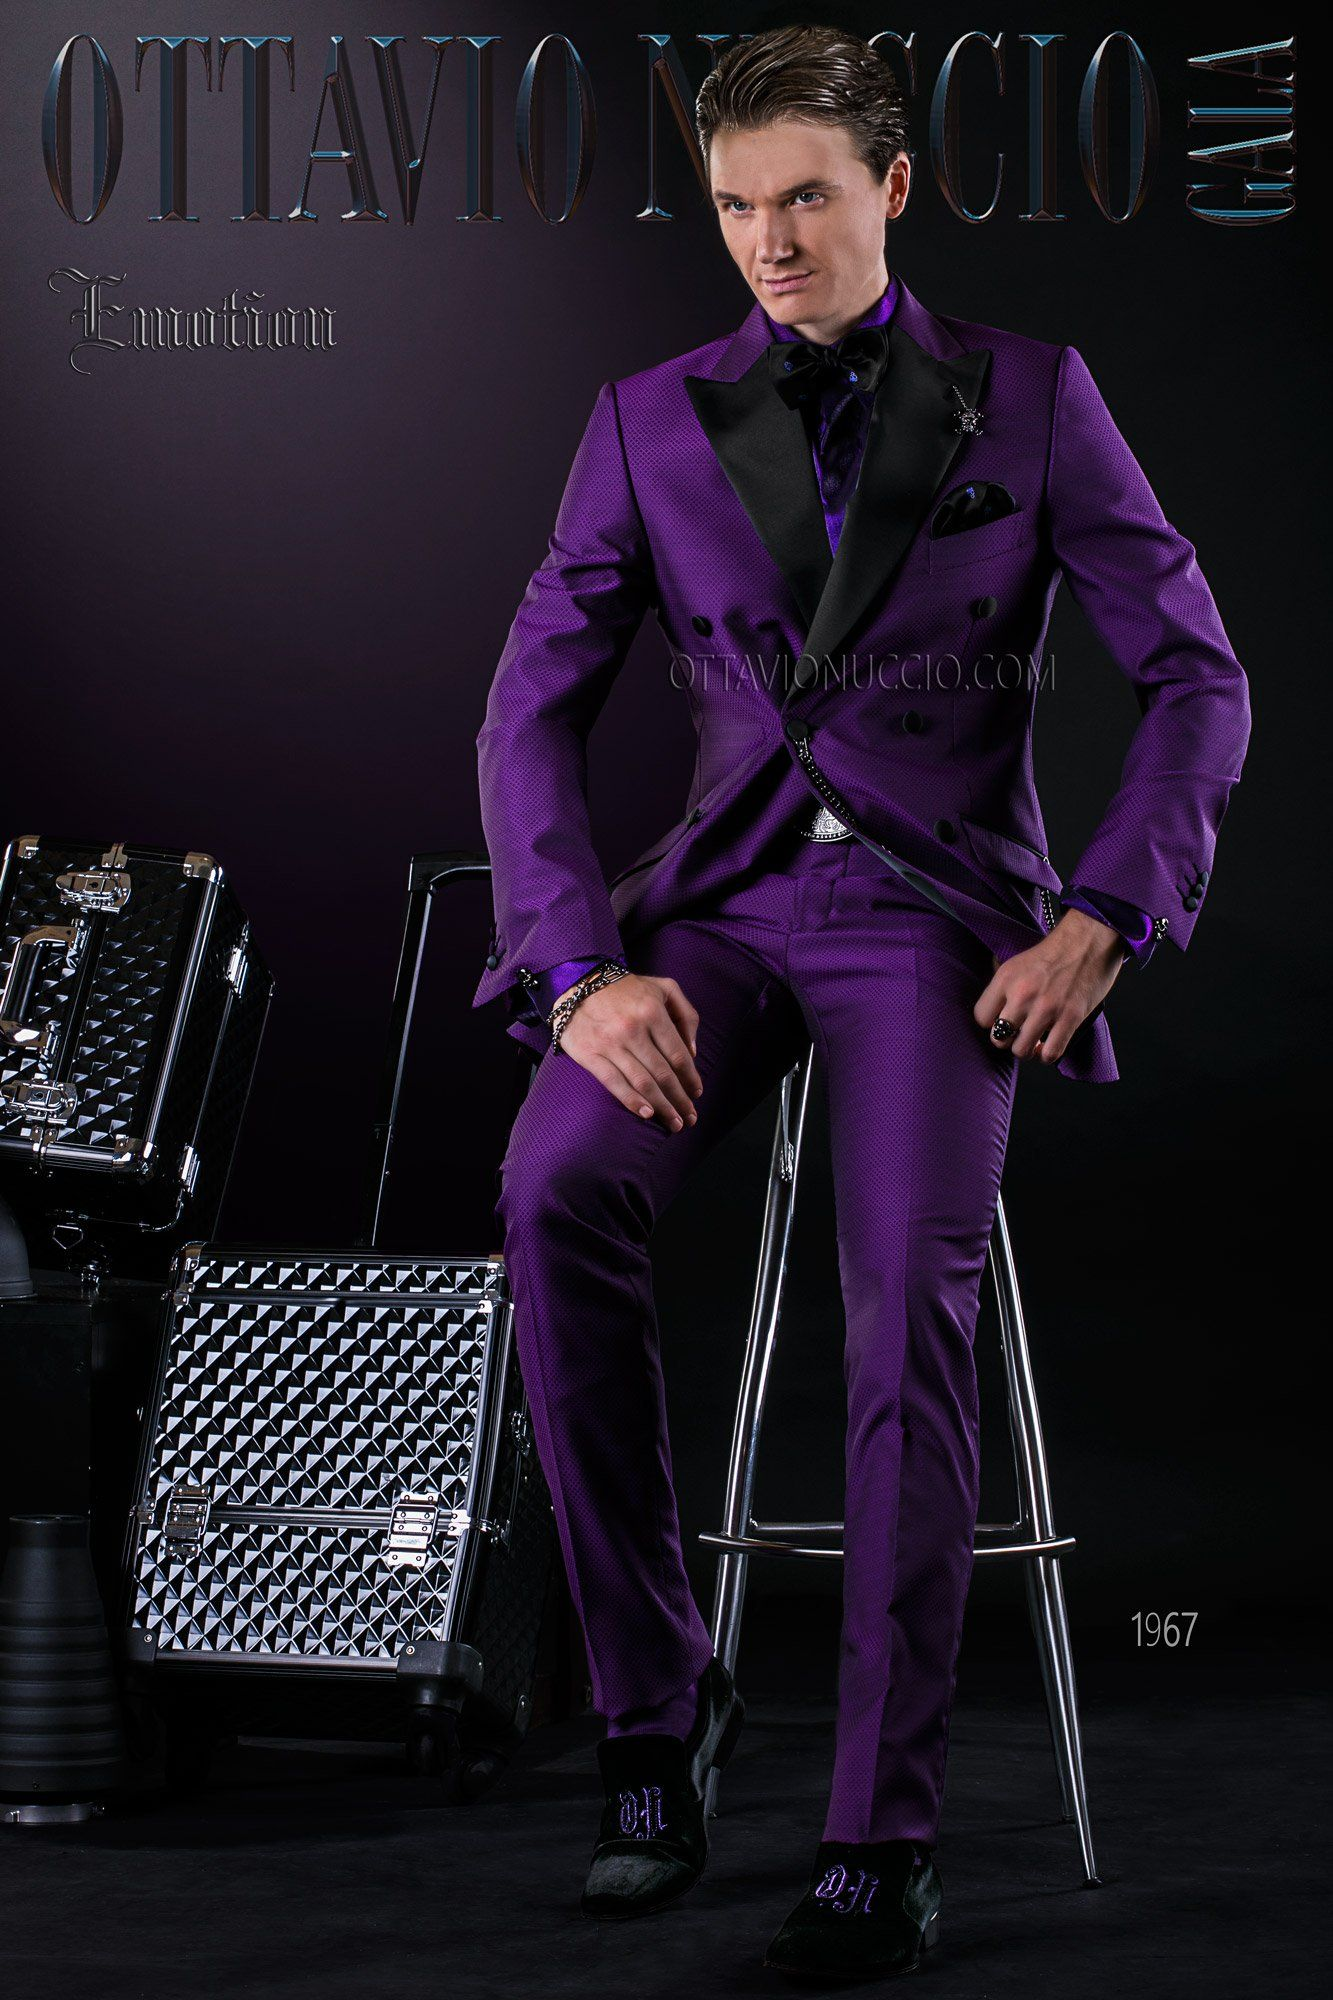 Black And Purple Double Breasted Groom Suit Wedding Tuxedo Doublebreasted Italian